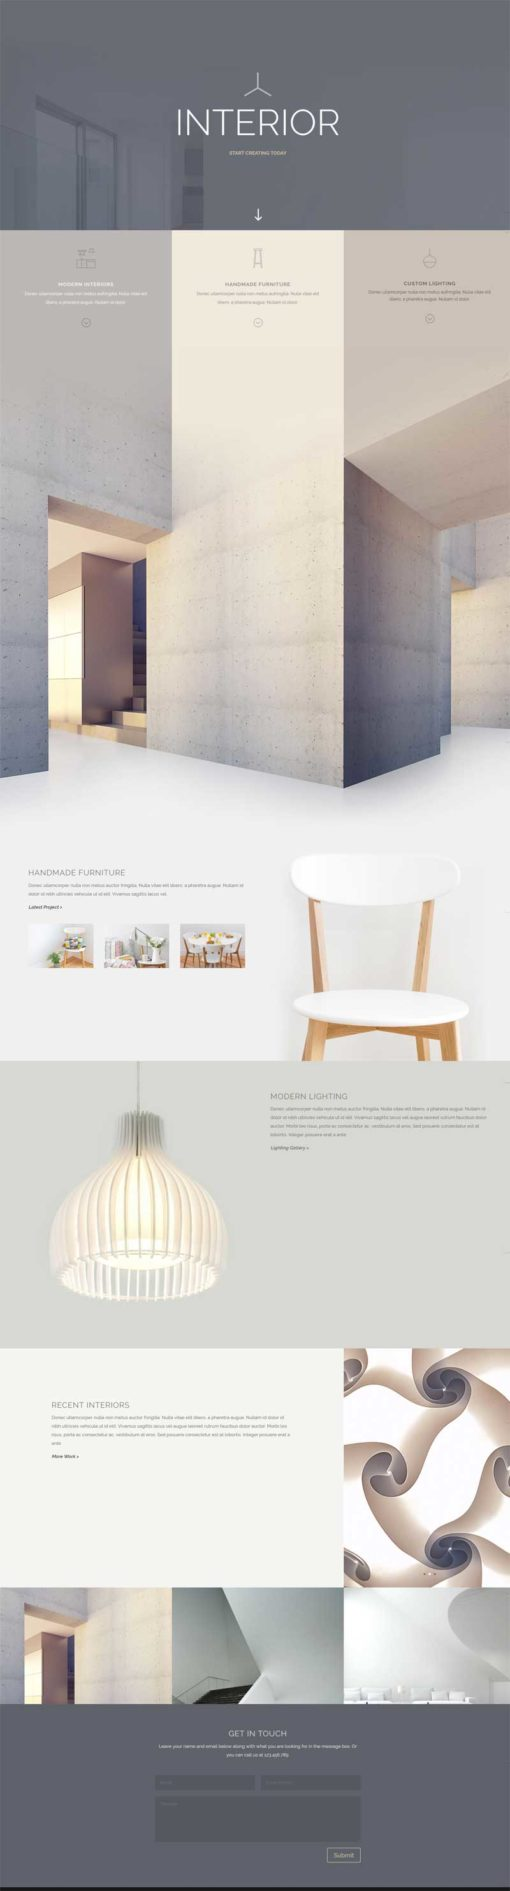 divi interior layout ET